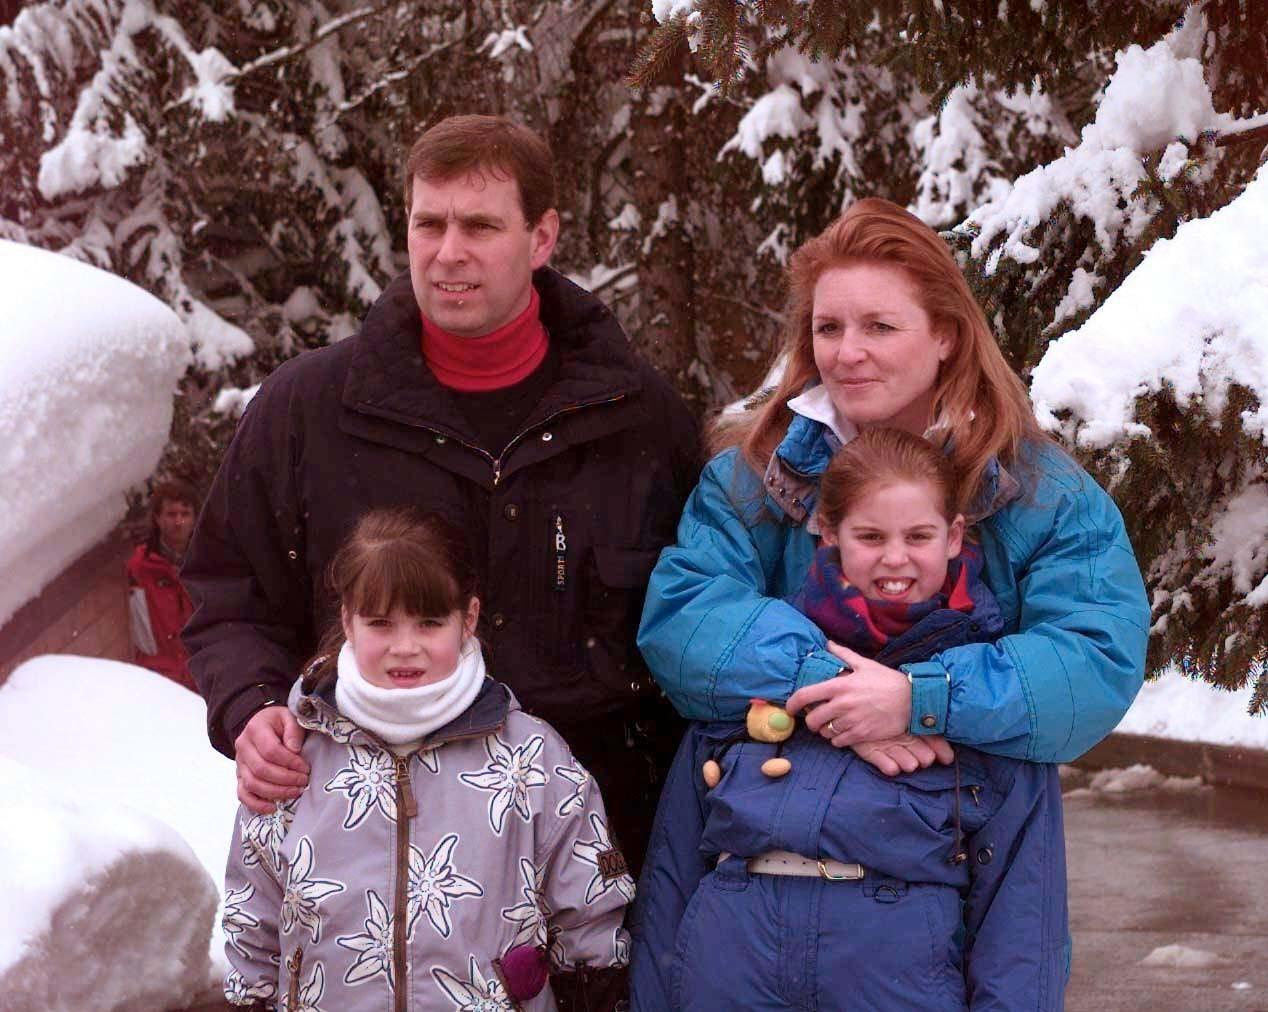 The Duke and Duchess of York (who are divorced) with their children Beatrice (r) and Eugenie, during a photocall in Verbier. The Duke, who celebrates his 39th birthday today, is on a sking holiday with his family.